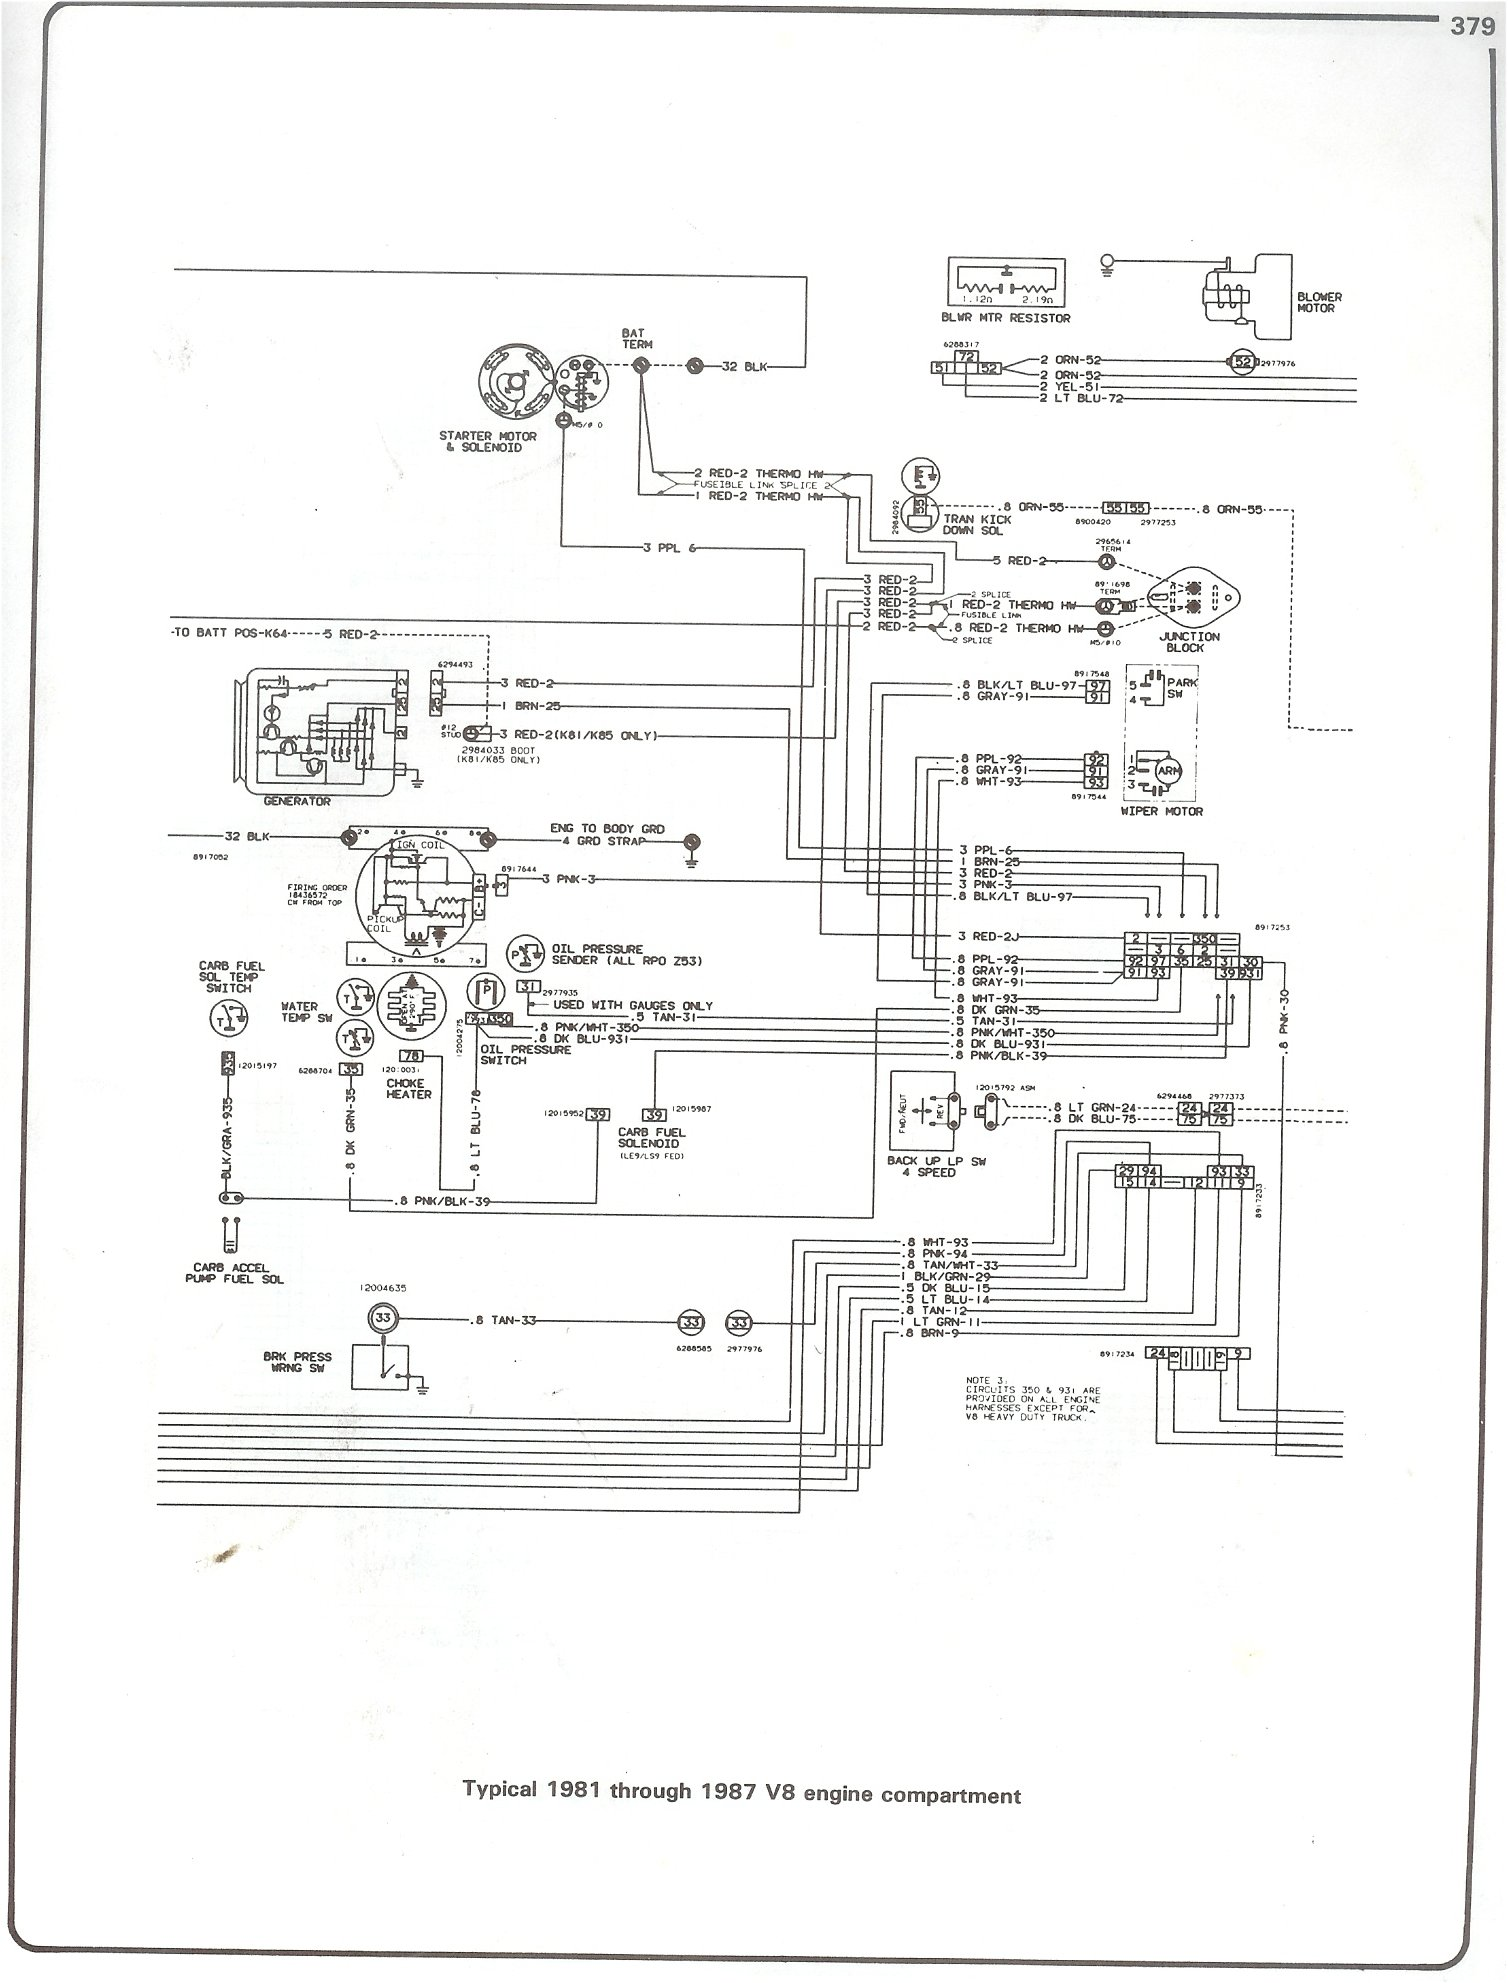 81 87_V8_engine chevy wiring diagrams chevy radio wiring \u2022 wiring diagrams j 97 chevy silverado radio wiring diagram at readyjetset.co